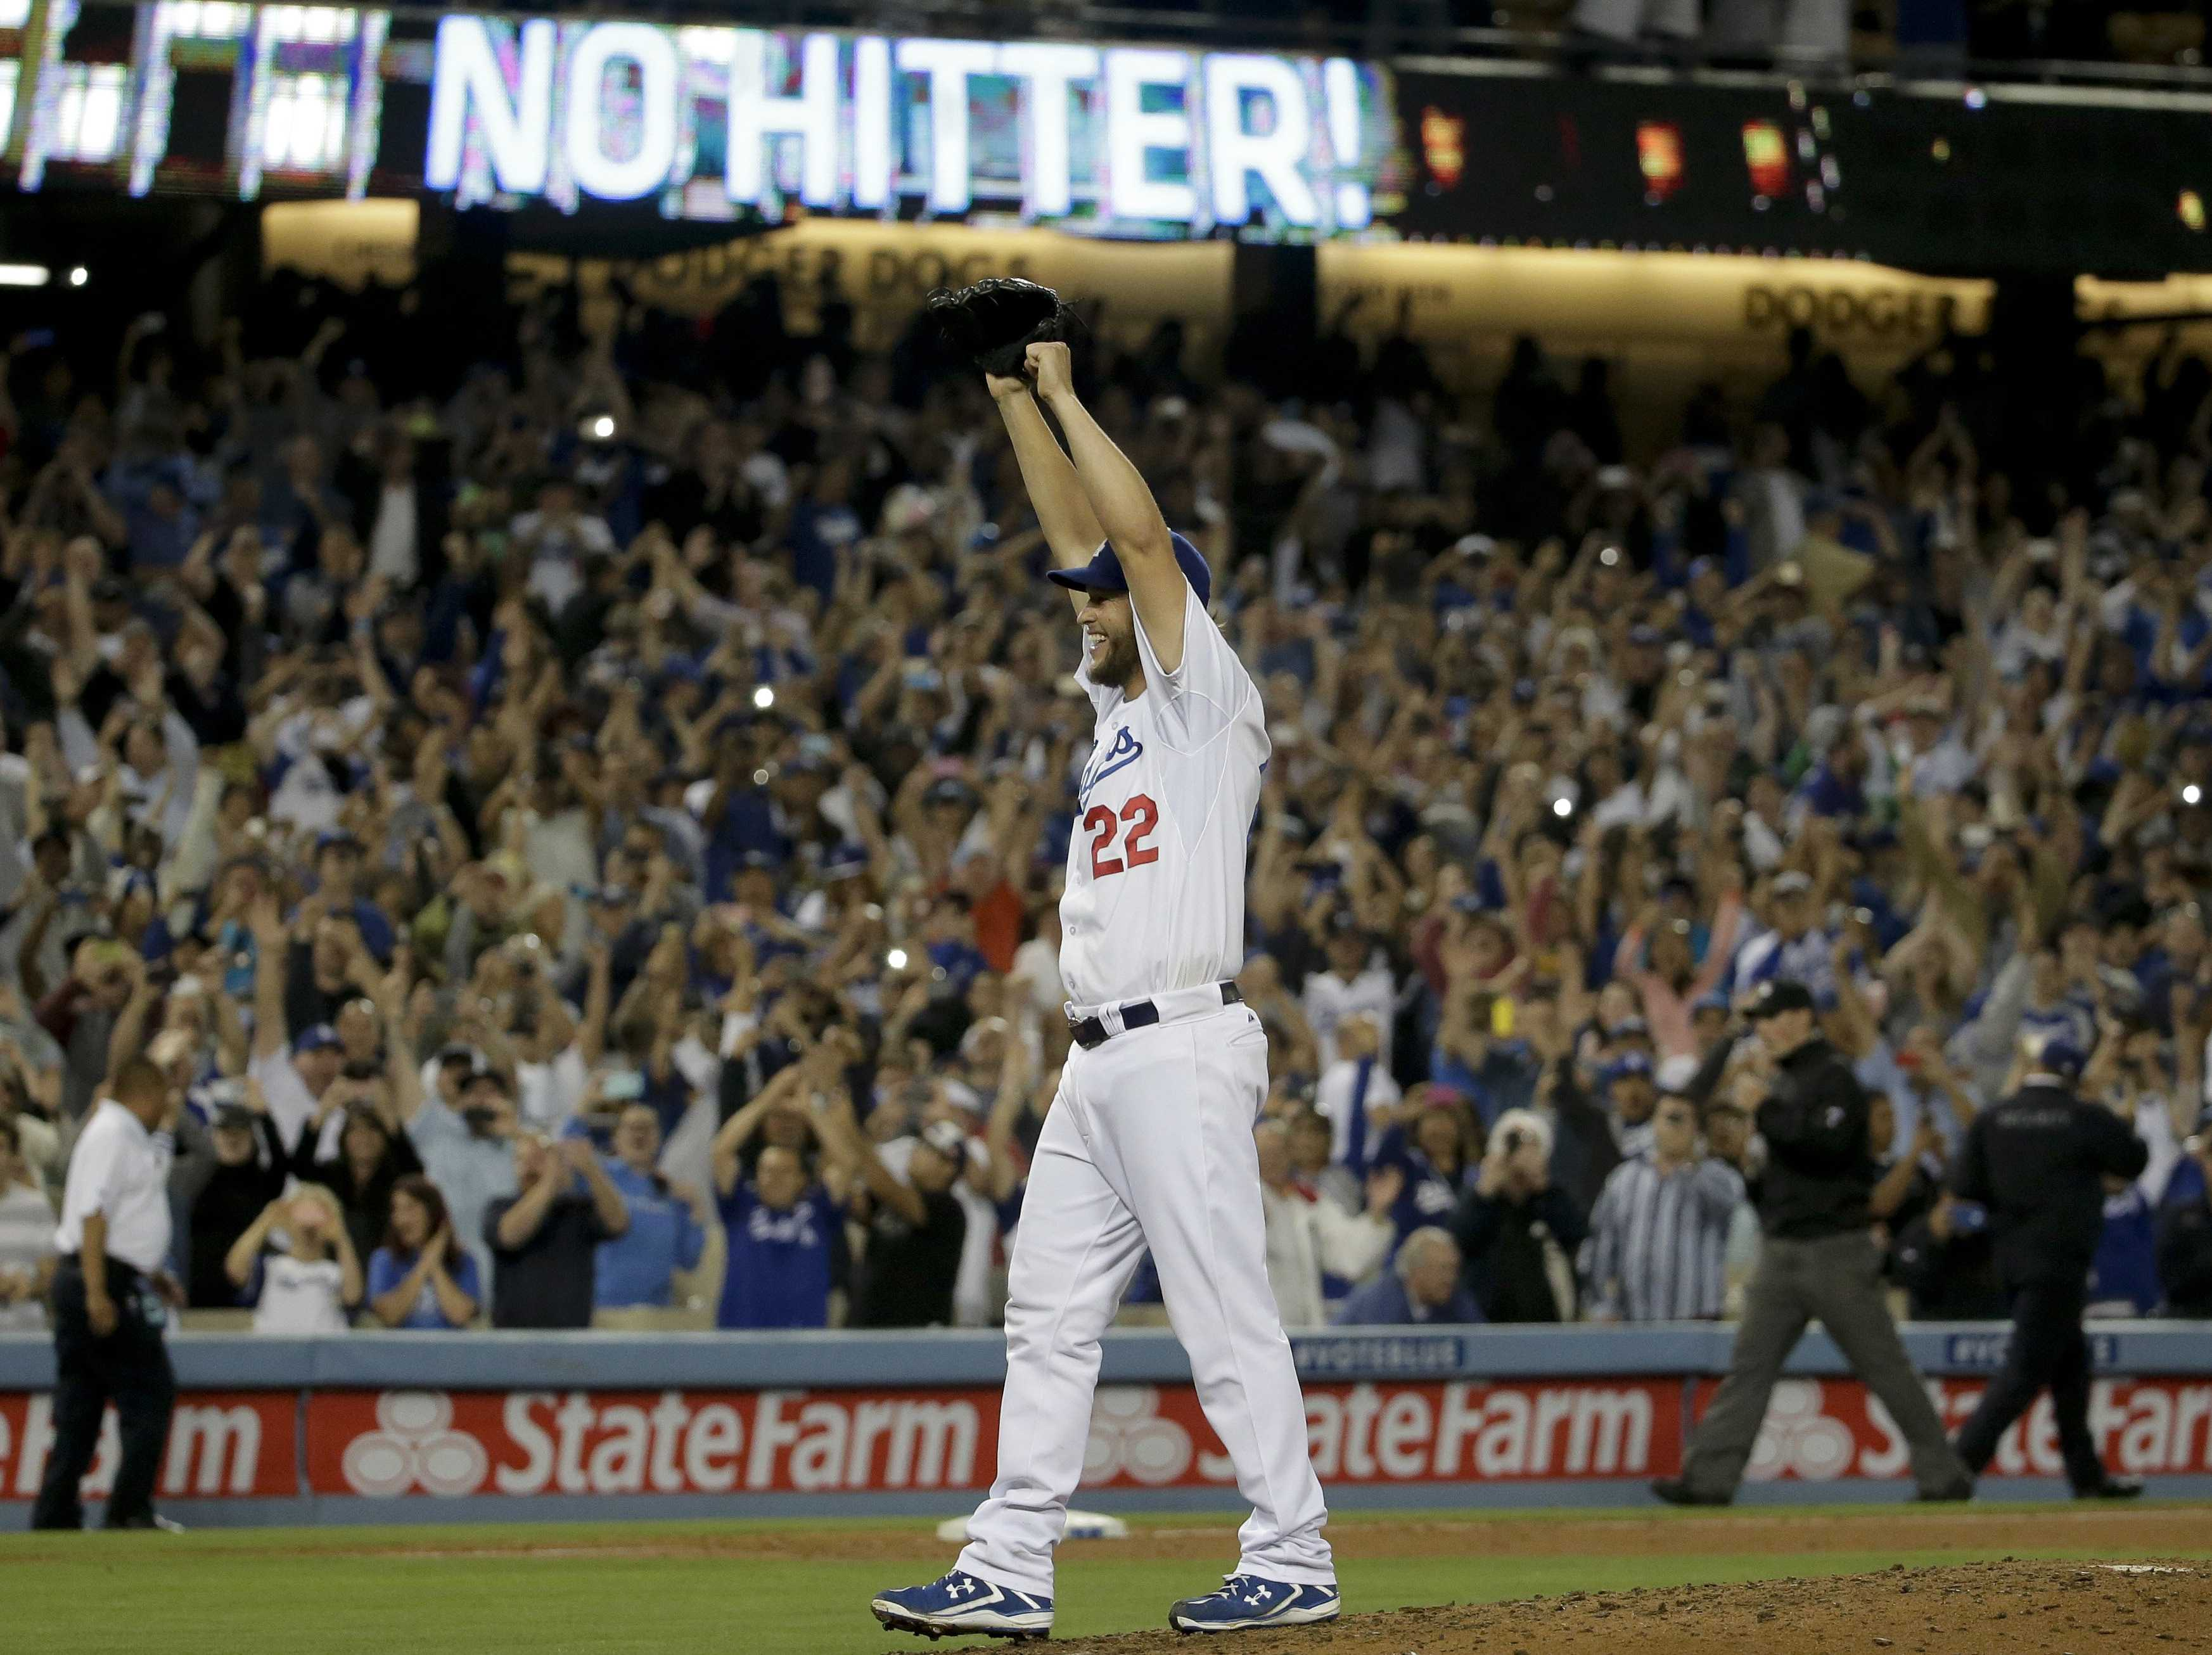 clayton-kershaw-threw-the-most-dominating-no-hitter-in-baseball-history